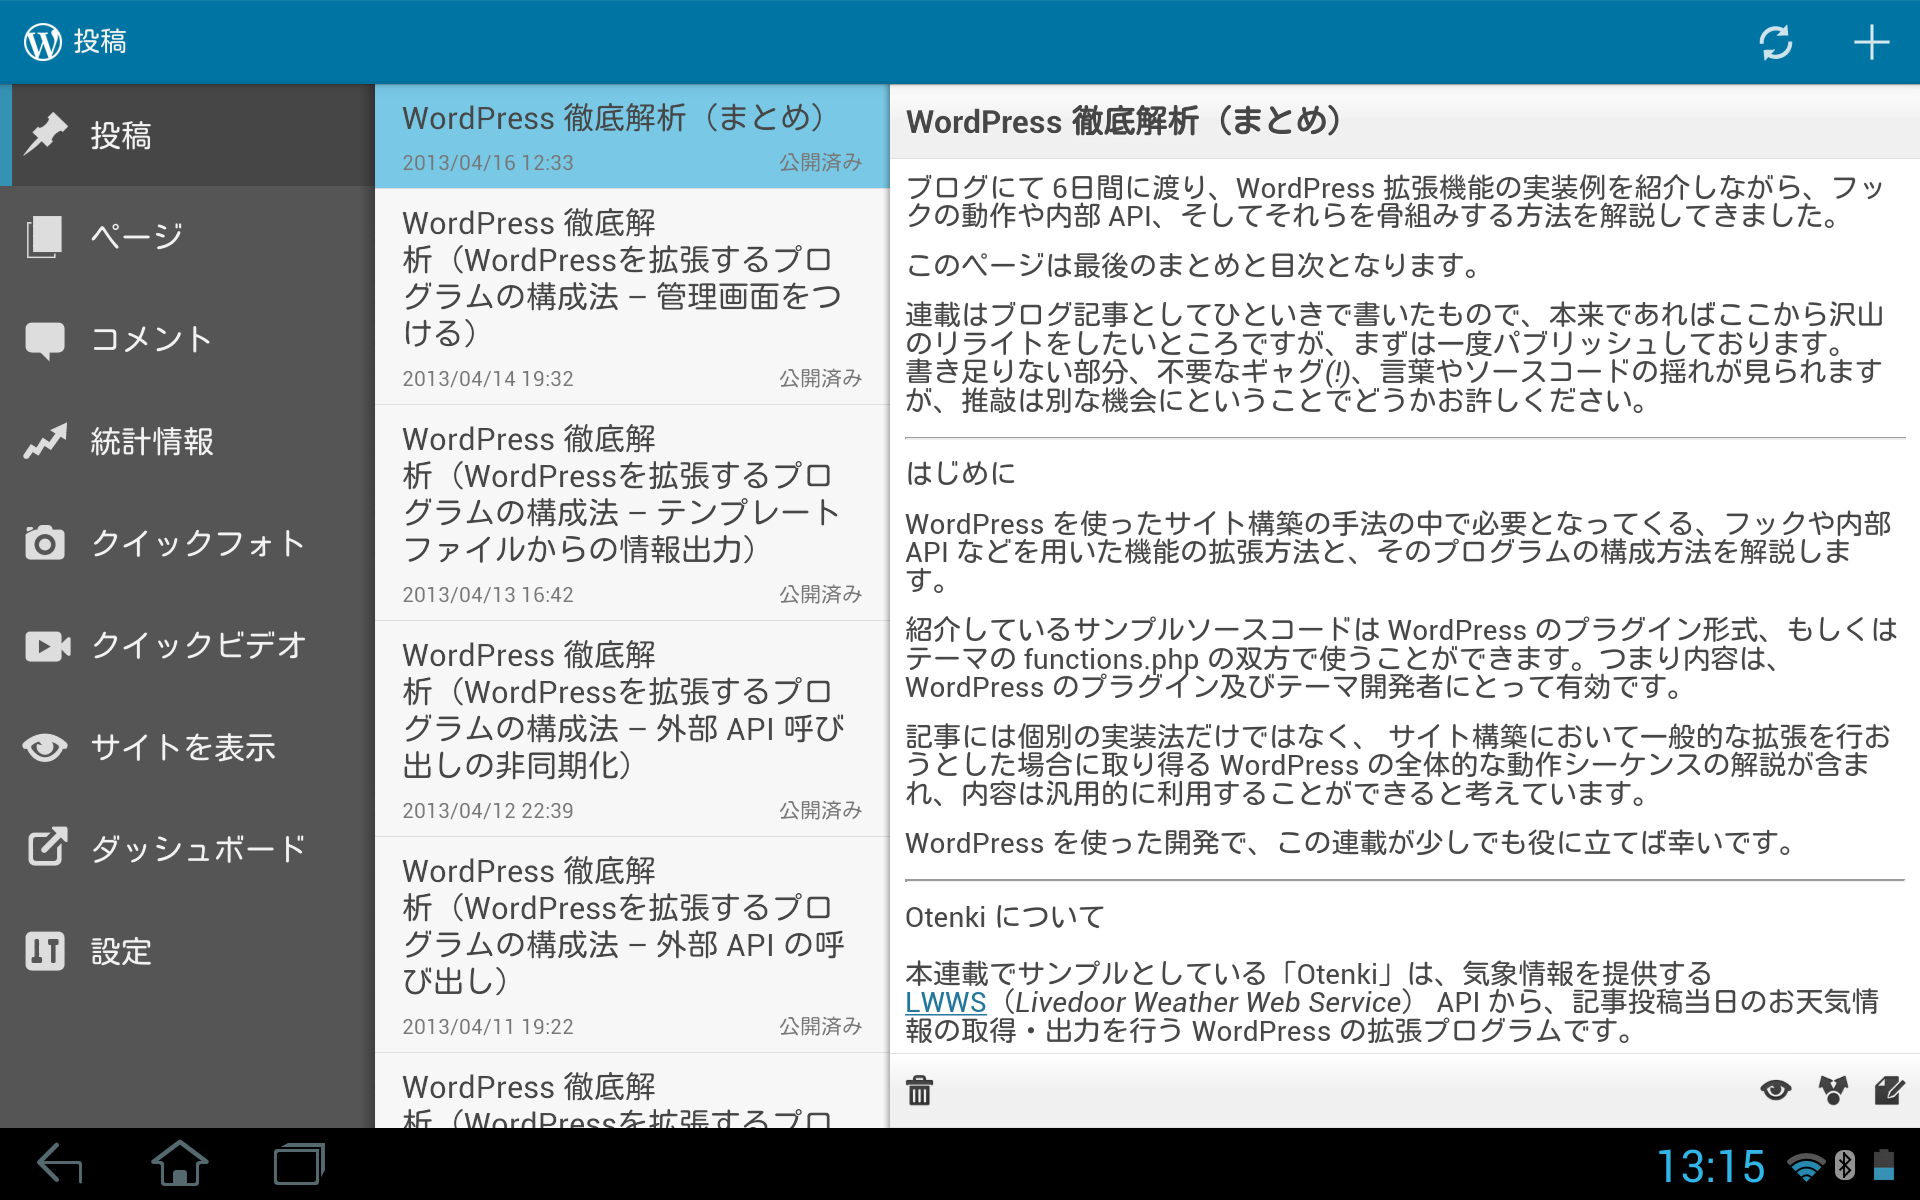 wpid-Screenshot_2013-04-19-13-15-21.png